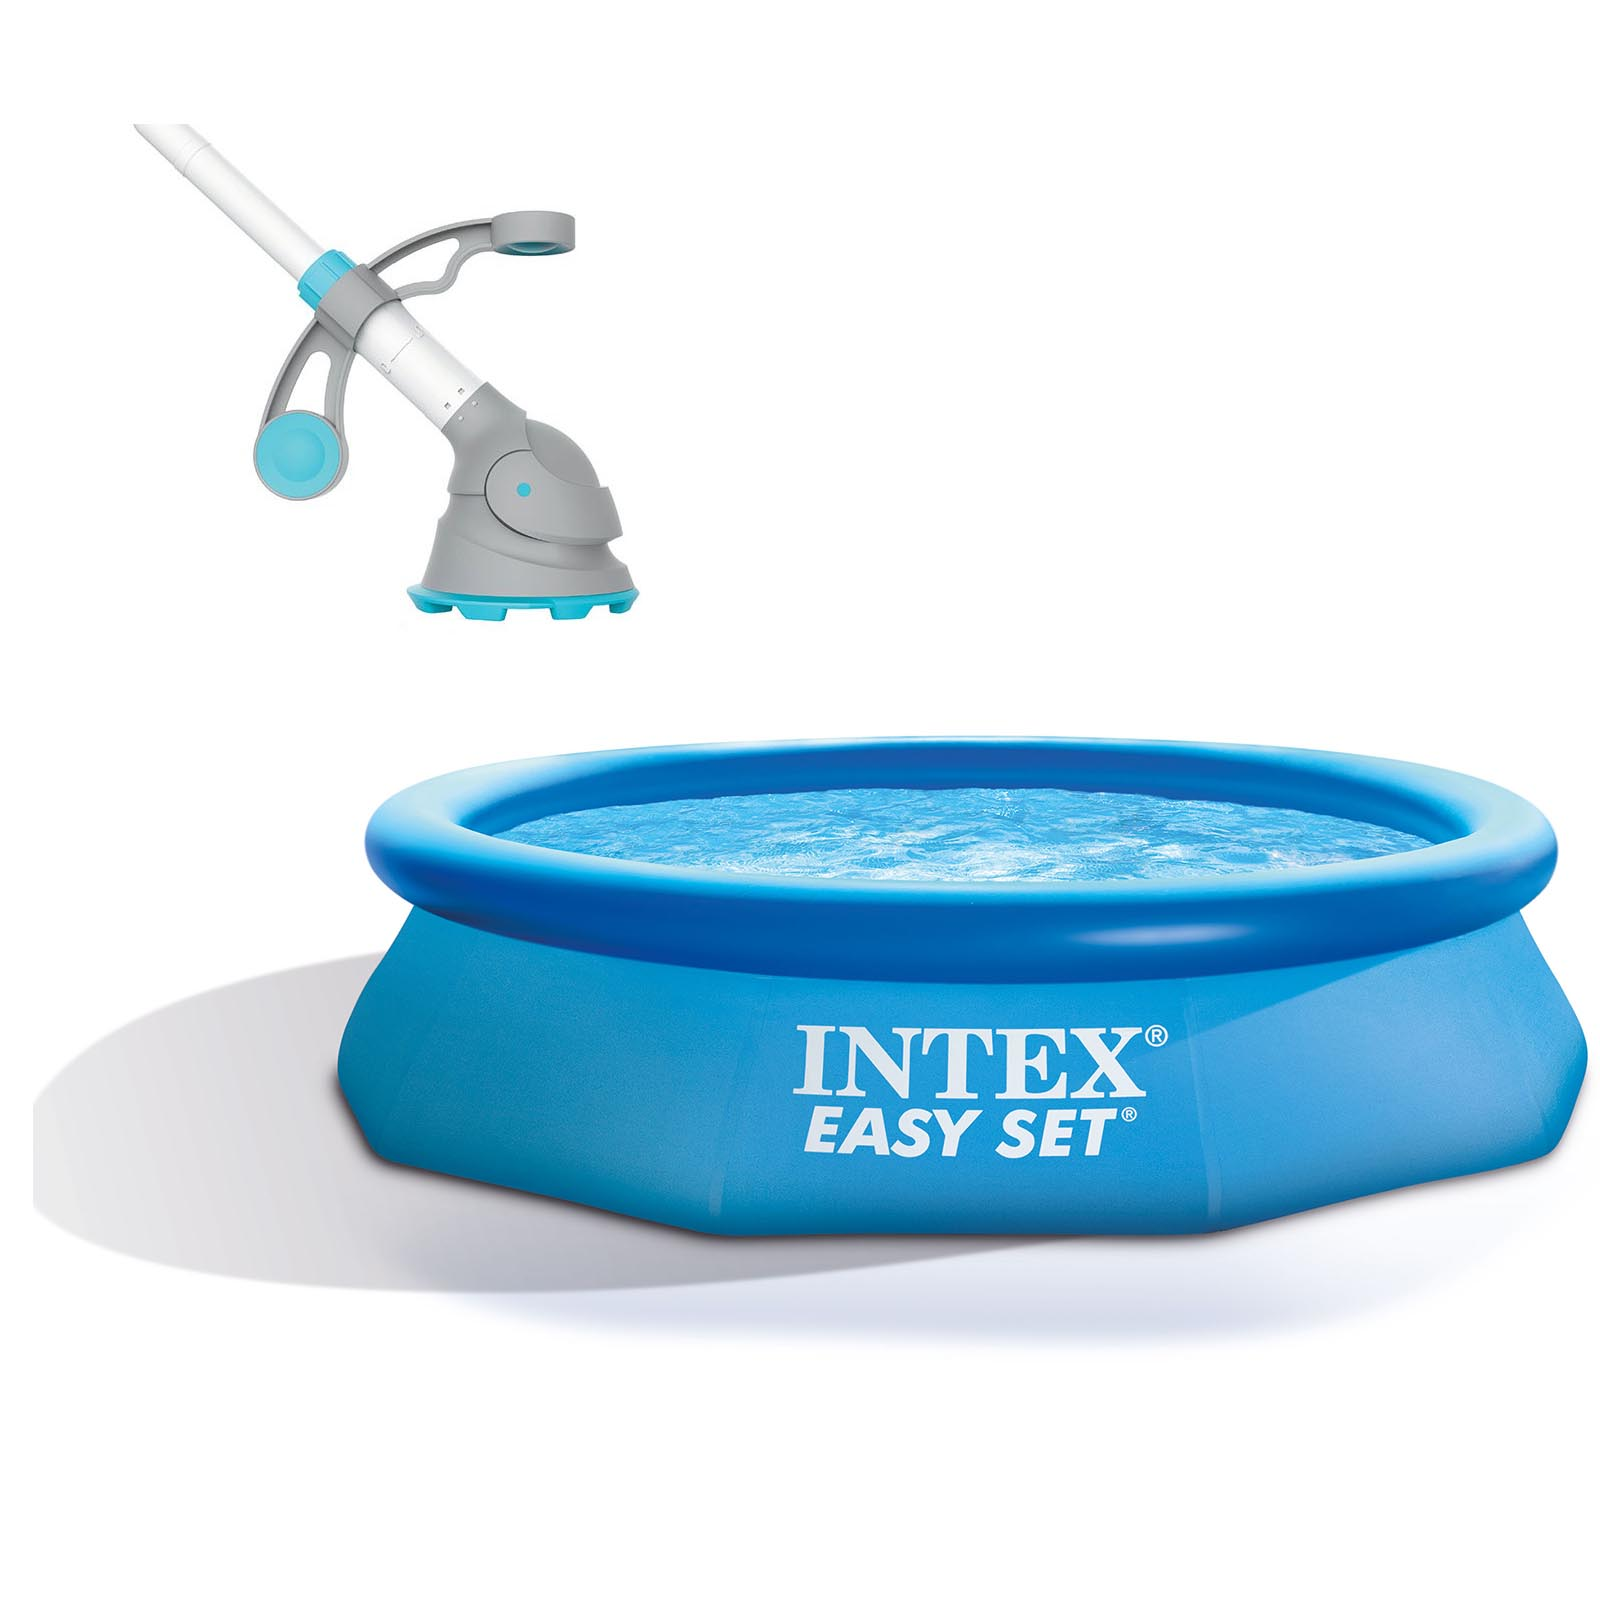 "Intex 10' x 30"" Easy Set Above Ground Pool + Kokido Krill Automatic Vacuum by Intex"